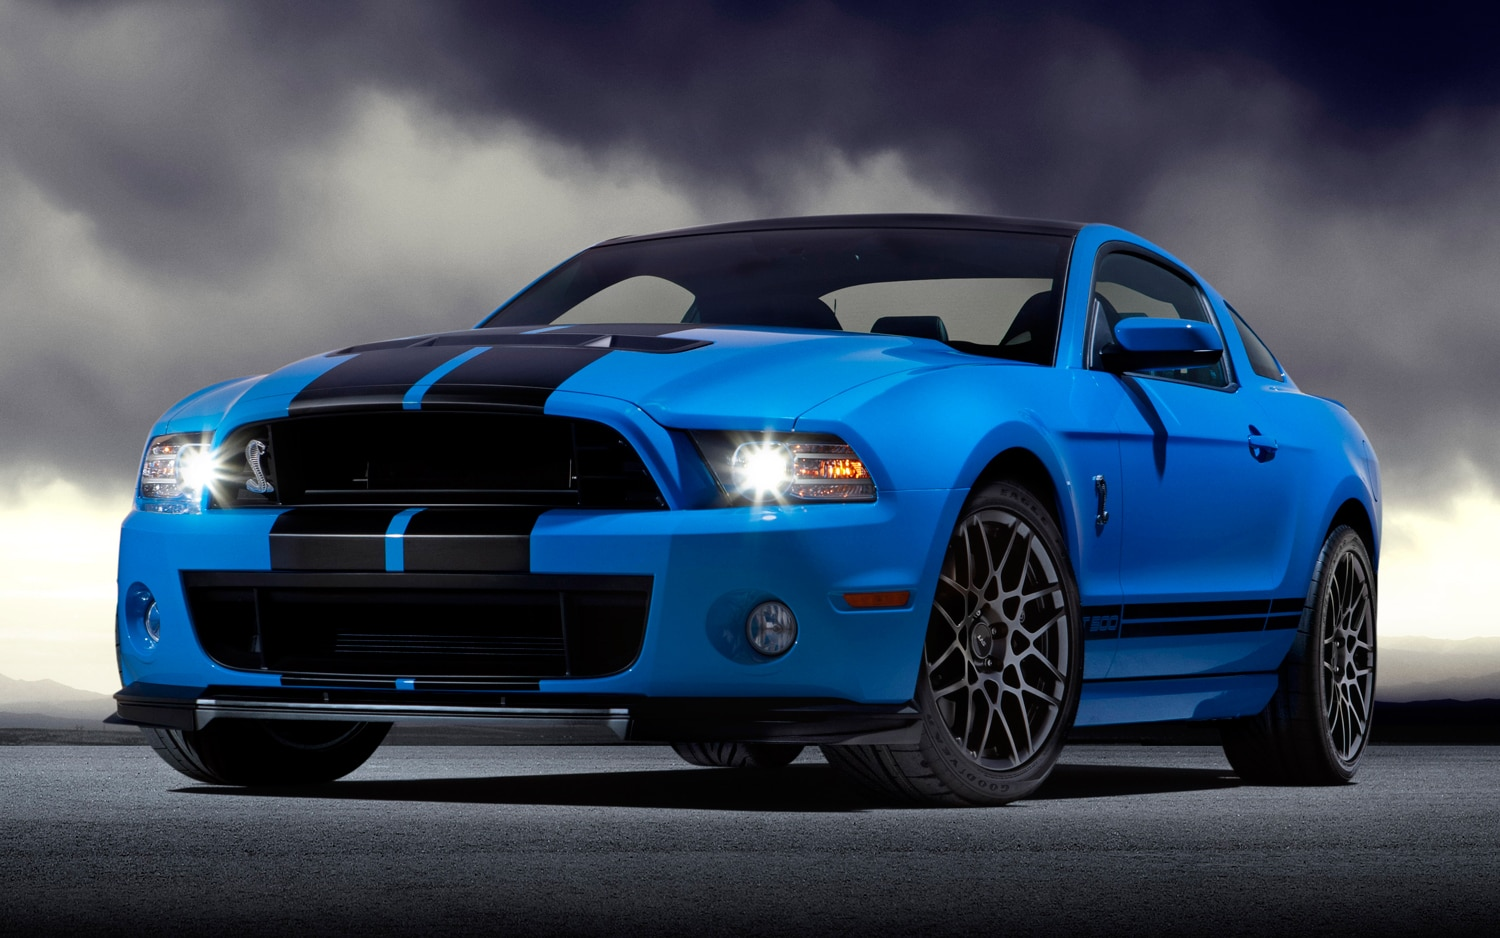 shelby 39 s new supercharger kit for 2007 2012 gt500 can add 300 hp. Black Bedroom Furniture Sets. Home Design Ideas